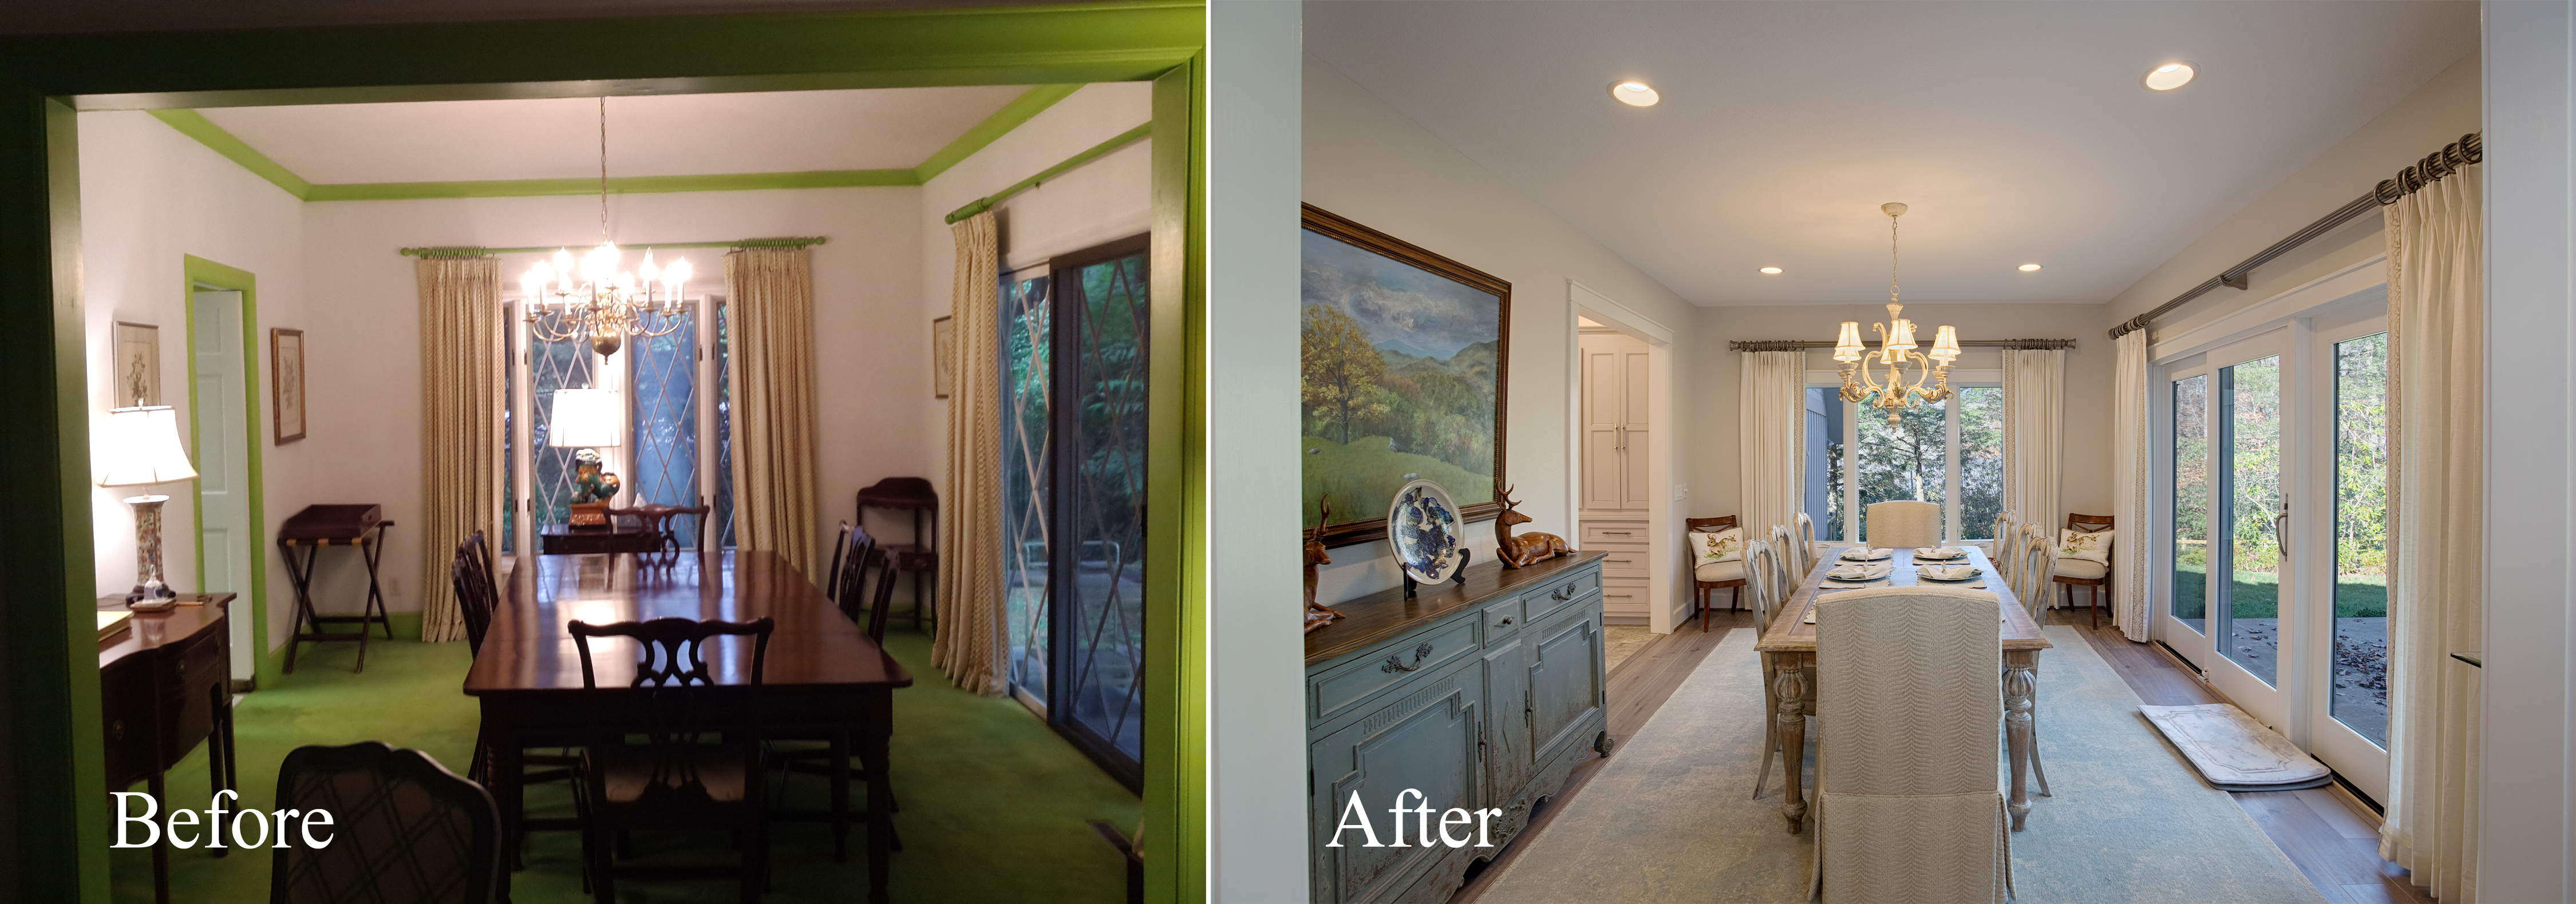 Eseeola Renovation Before After-2